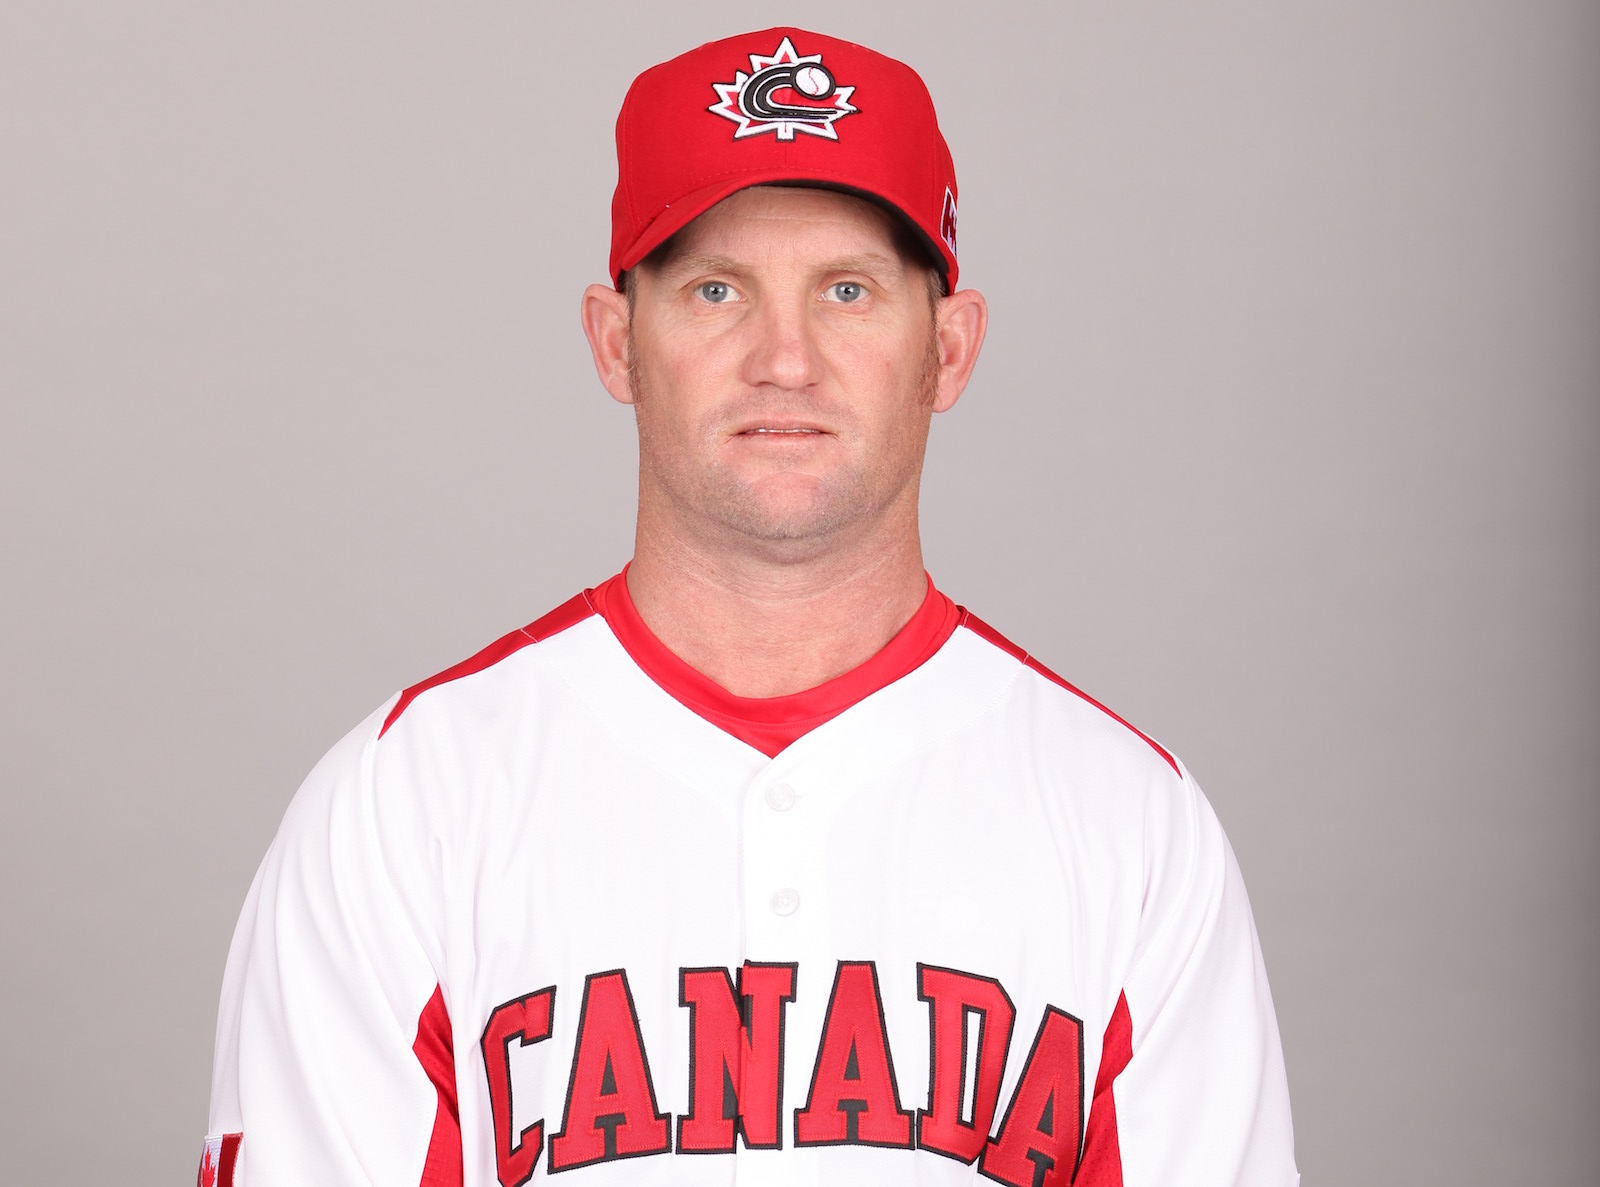 Baseball America tabs Clapp as Minor League Manager of the Year